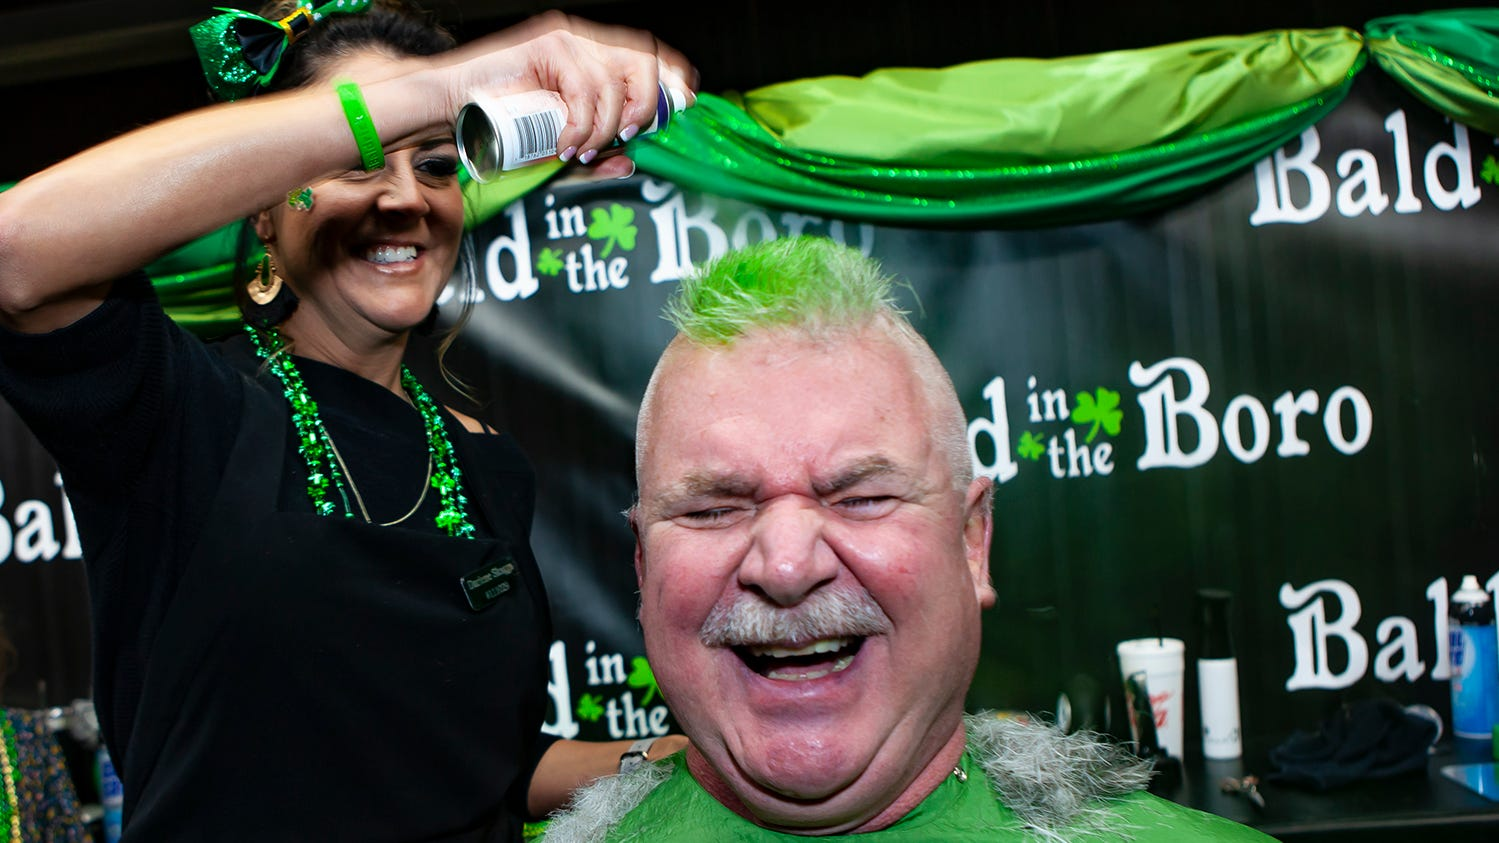 Darlene Skaggs gives Chris England a green mohawk at the ninth annual Bald in the Boro fundraiser for the St. Baldrick's Foundation. The event was held Friday, March 15, 2019 at Lanes, Trains and Automobiles in Murfreesboro.